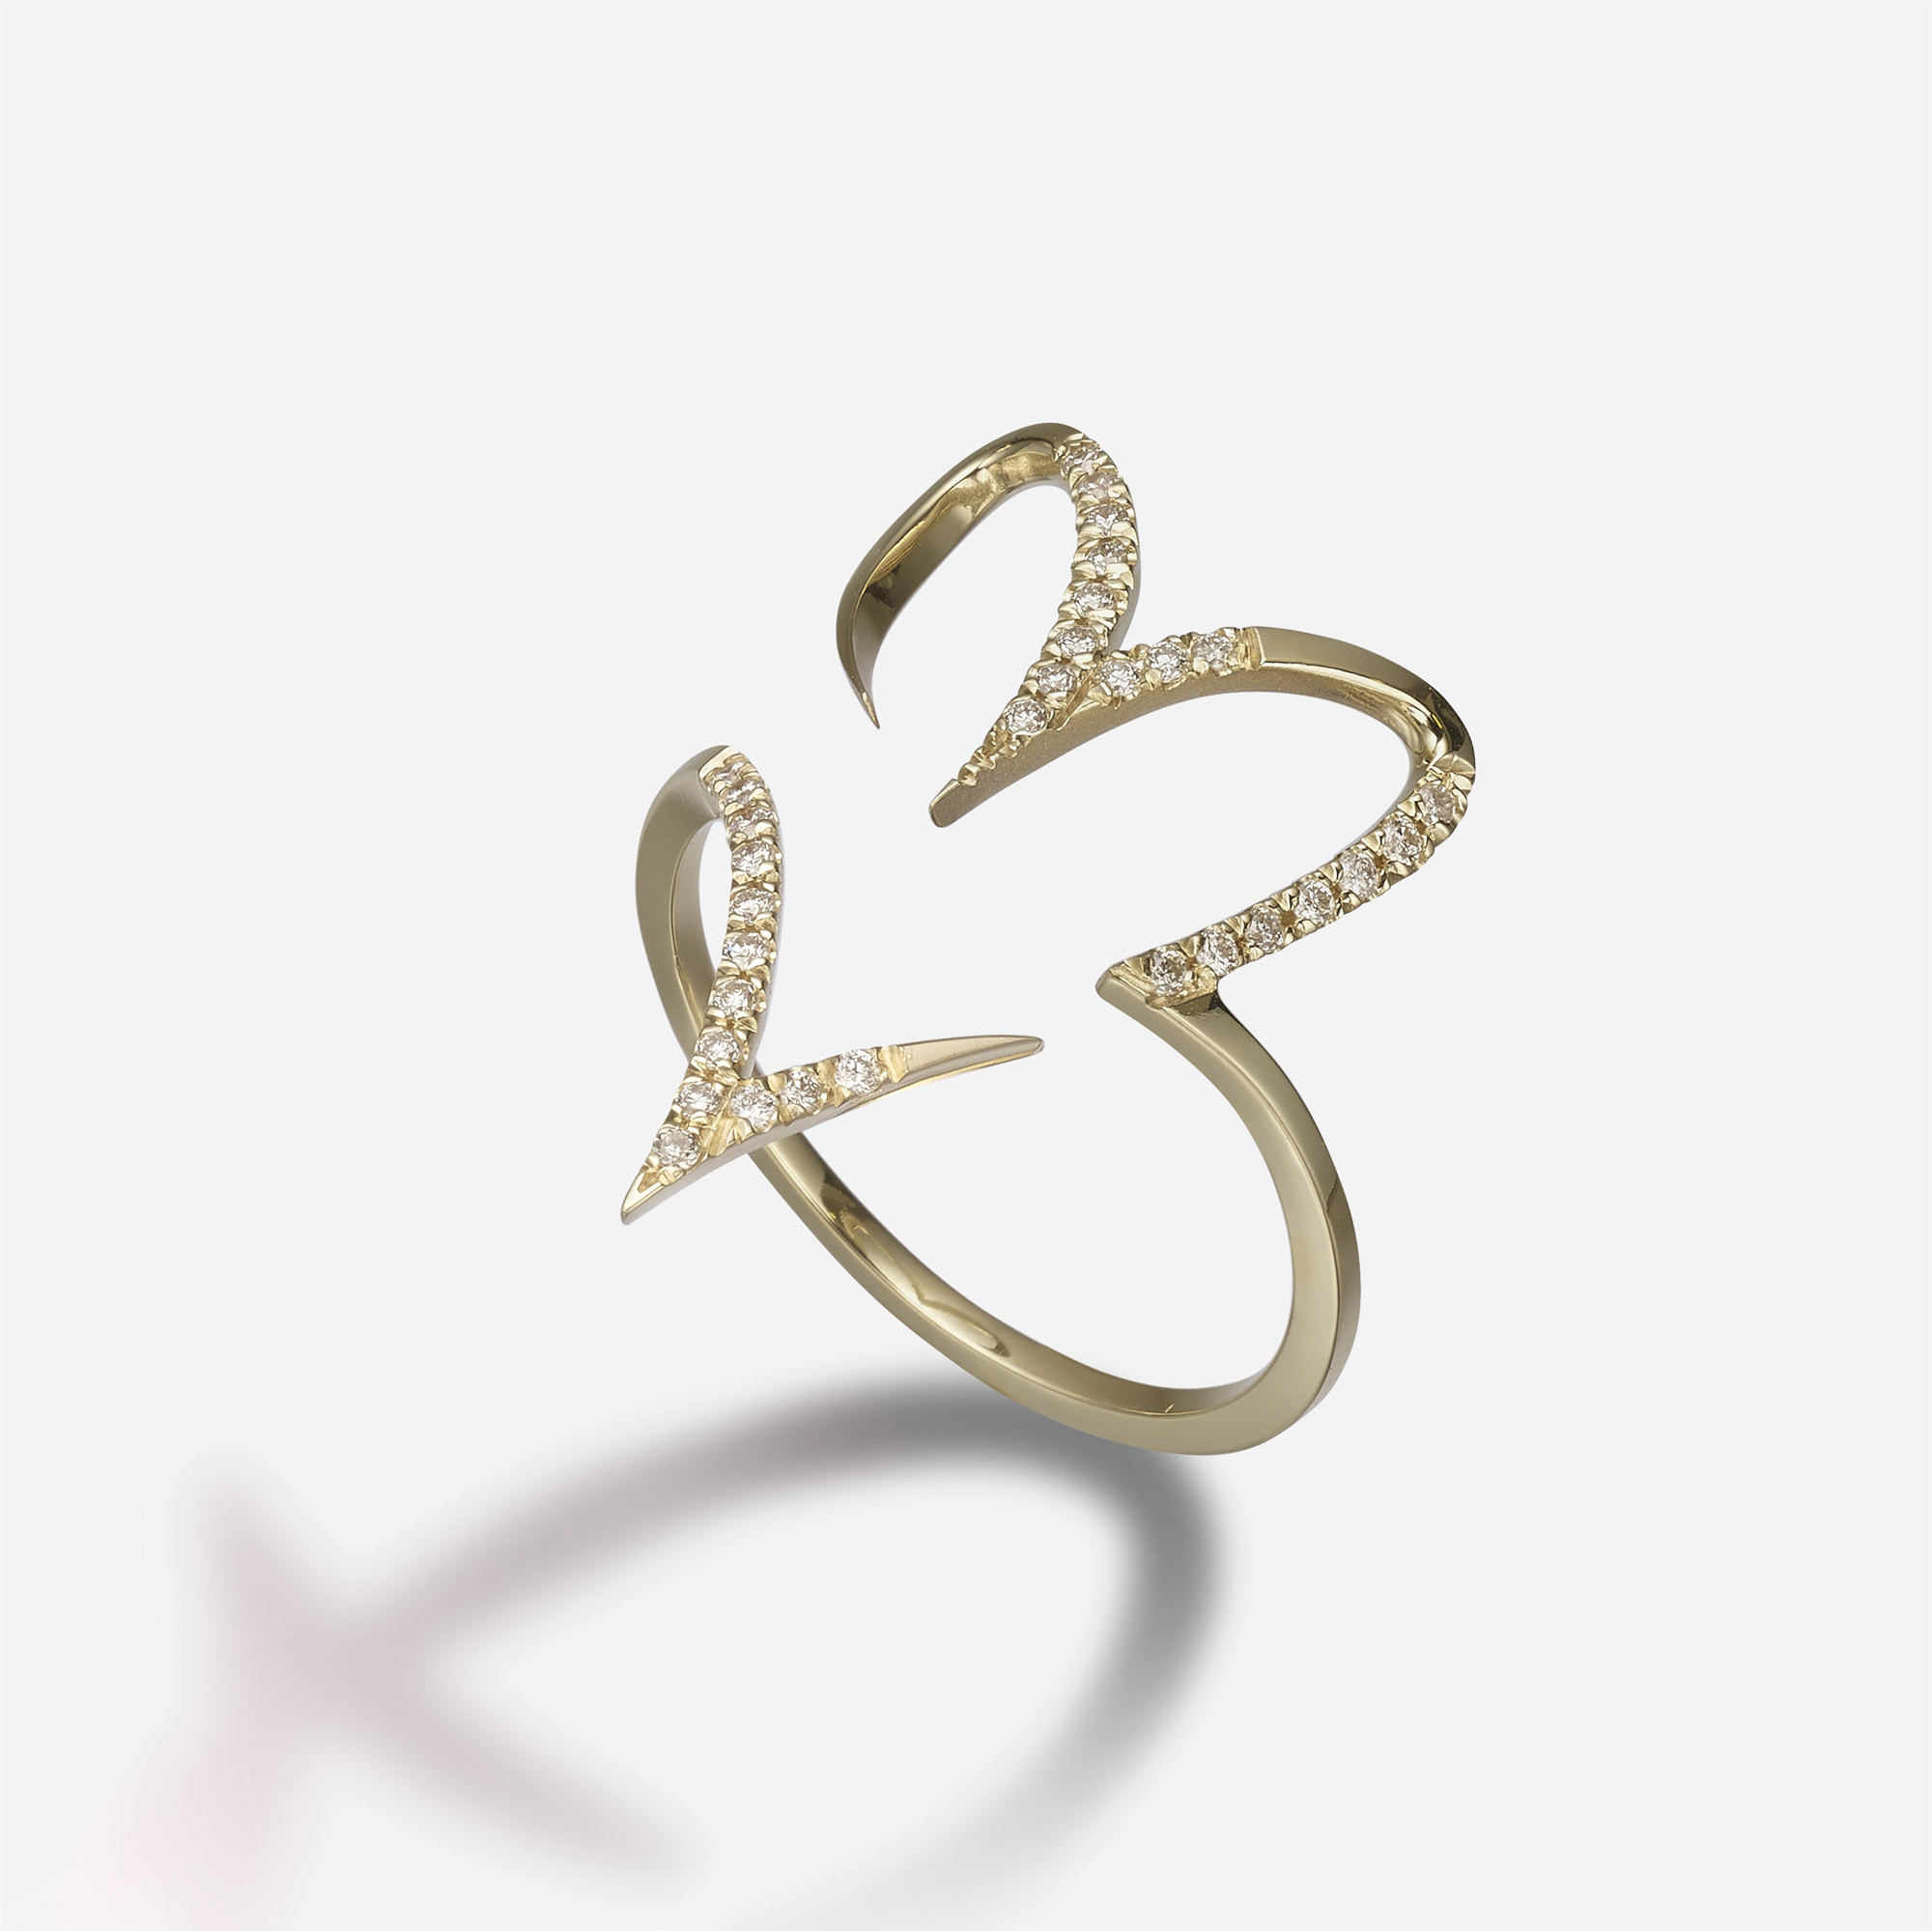 Cursive Heart | Pavé Diamonds Inside Most Up To Date Pavé Hearts Band Rings (View 5 of 25)